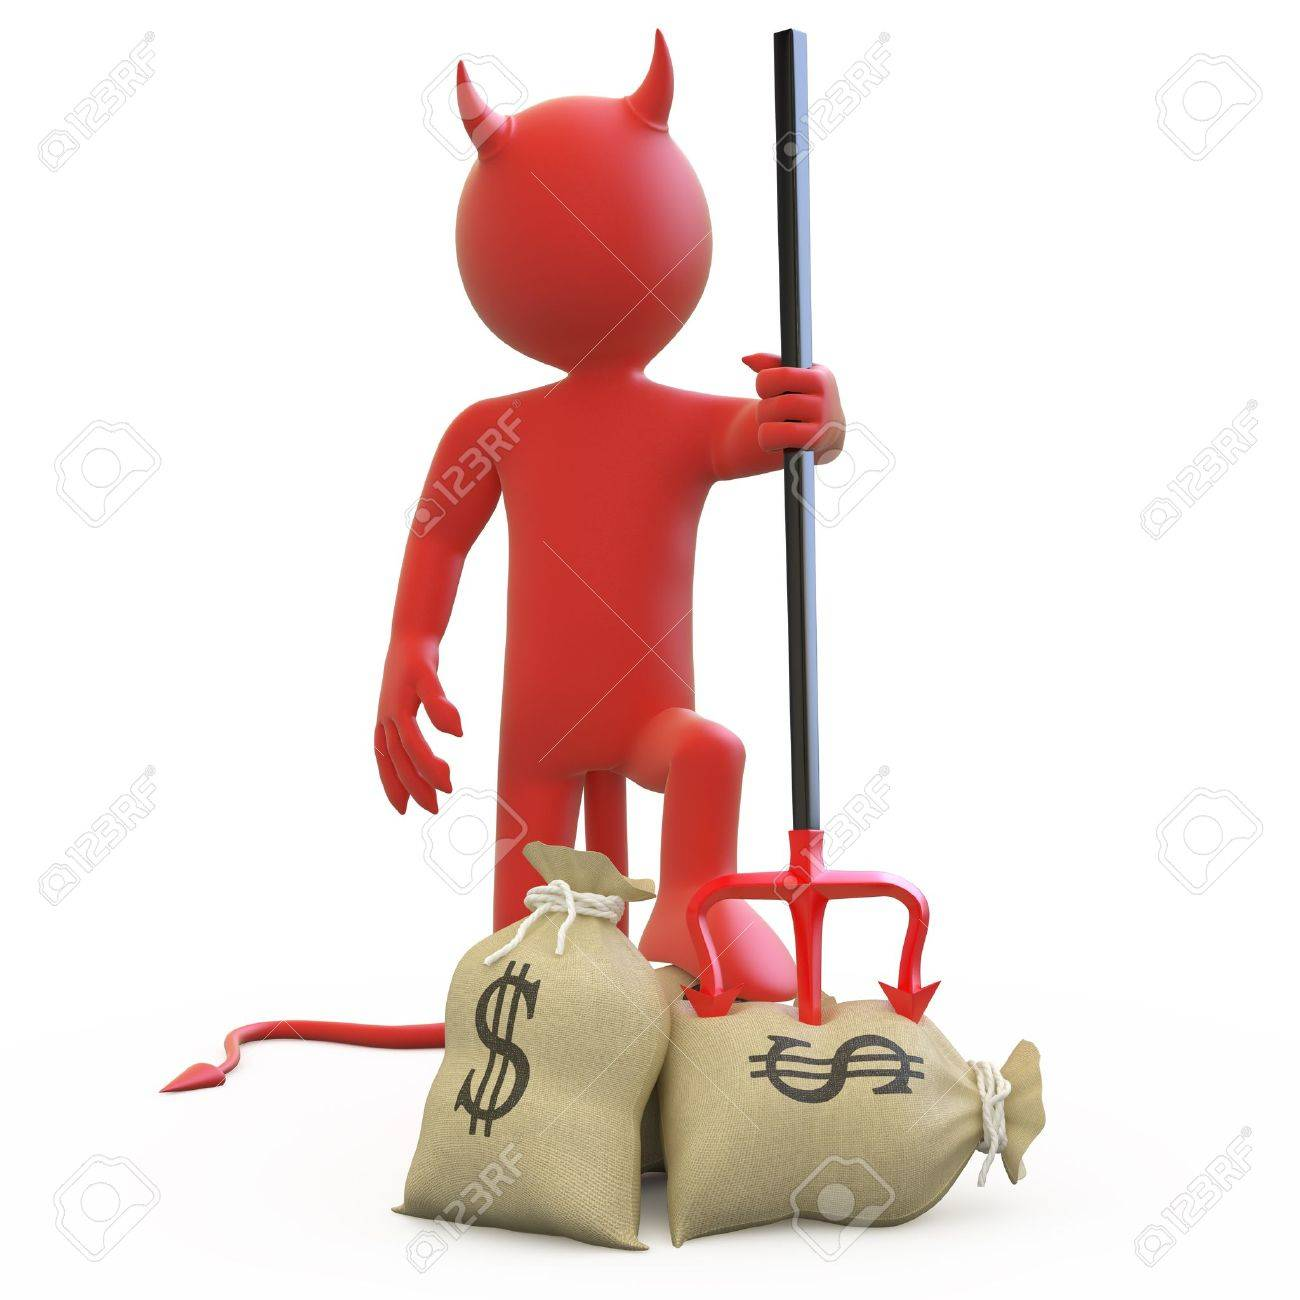 Devil with his trident stuck in sack of dollars Stock Photo - 9592326